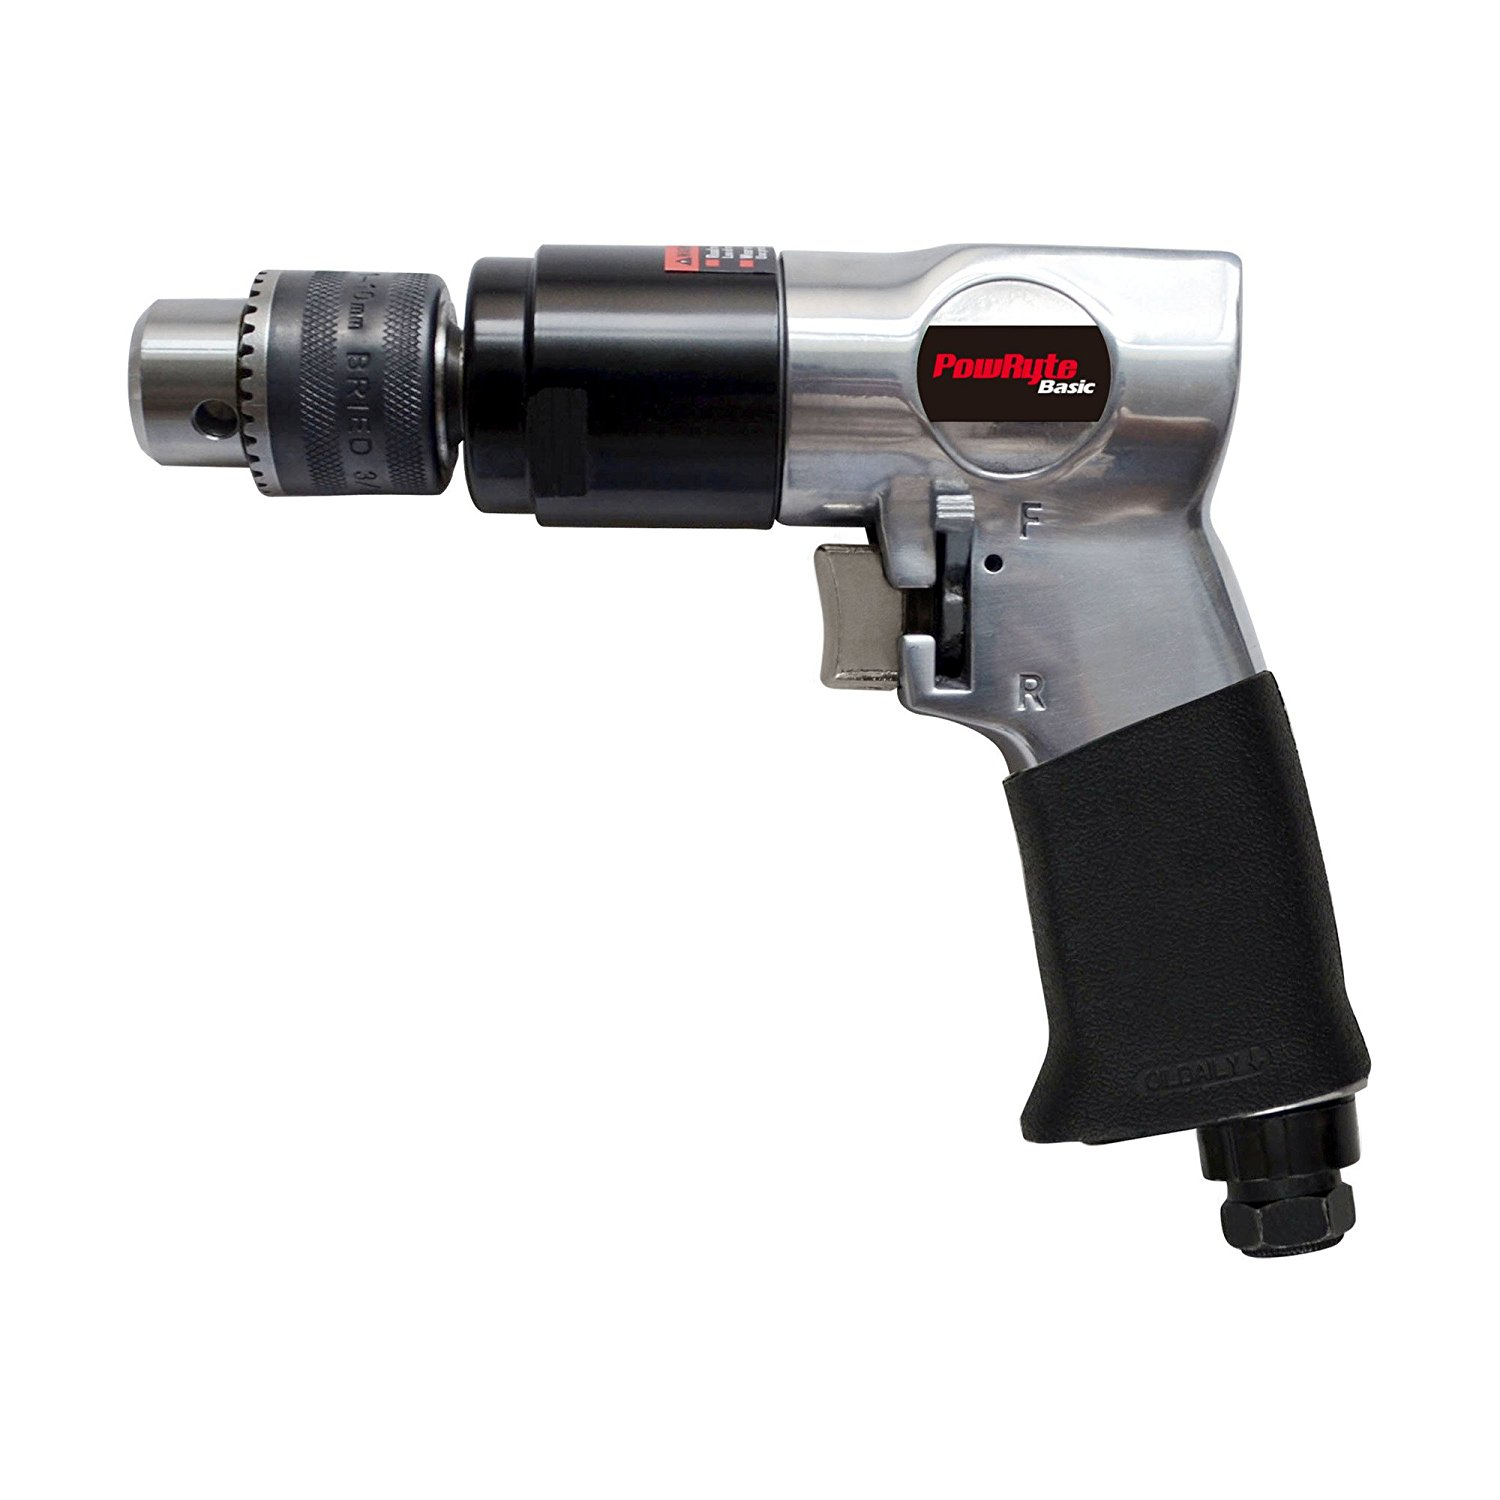 PowRyte Basic 3/8-Inch Reversible Air Drill